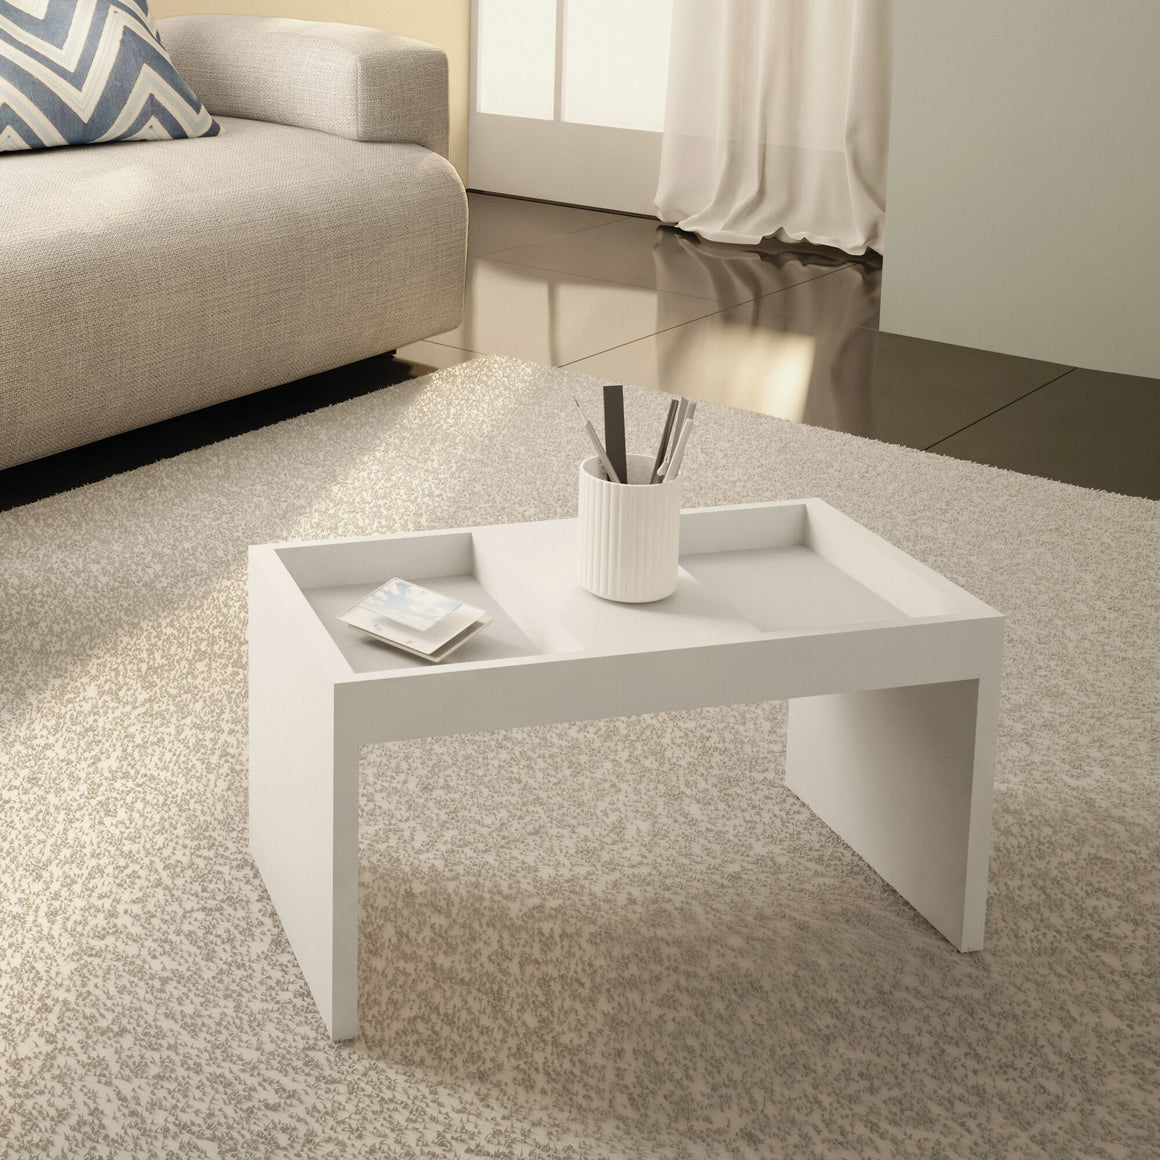 Marine Modern Coffee Table with Magazine Shelf in White